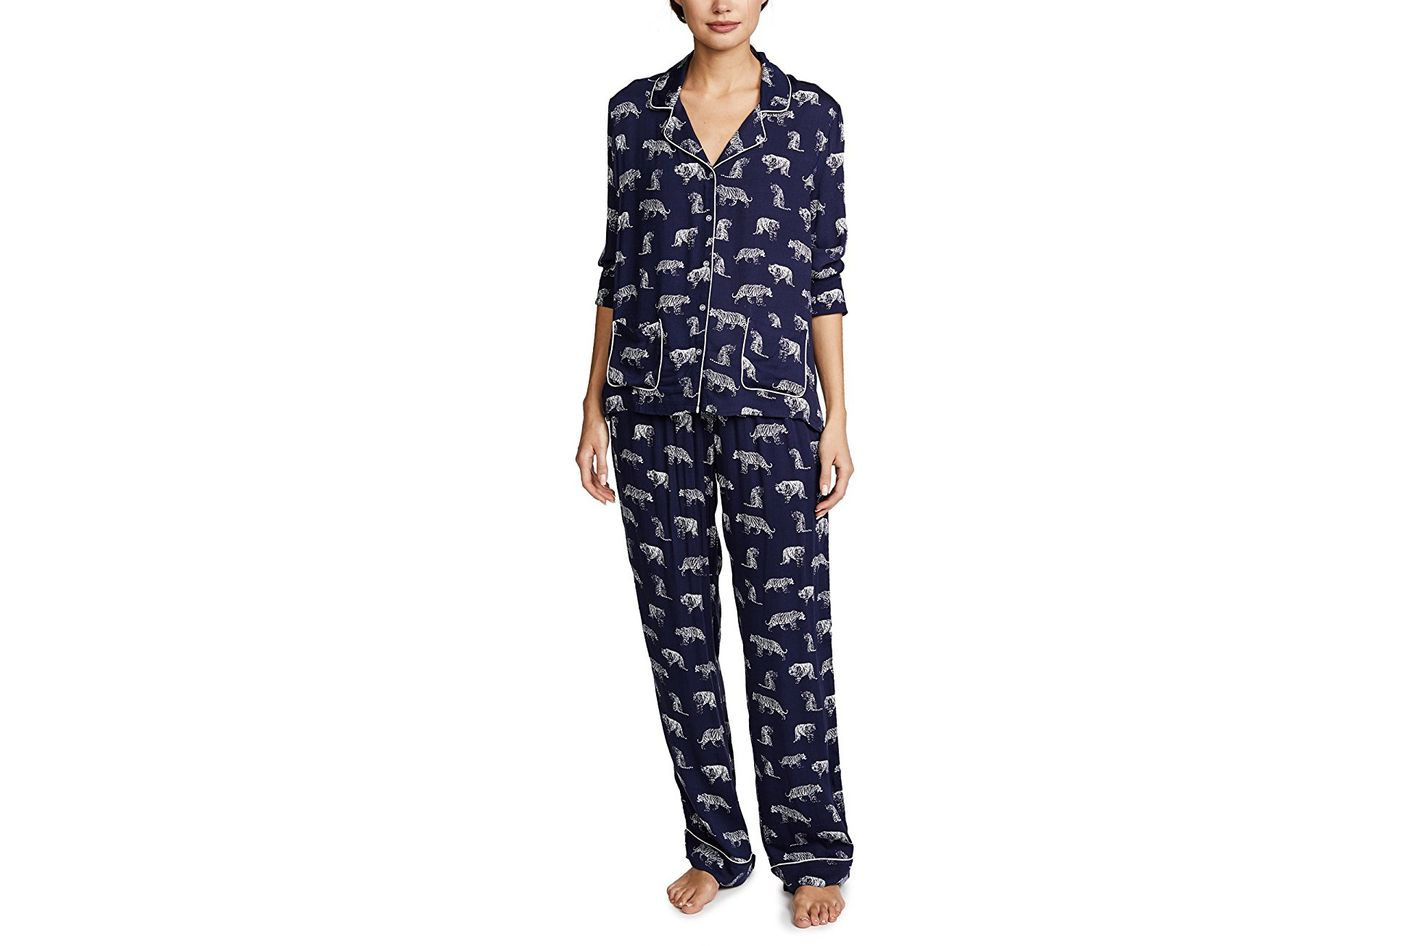 e3c74d3c7 Printed Pajamas. Splendid Gentle Tiger PJ Set